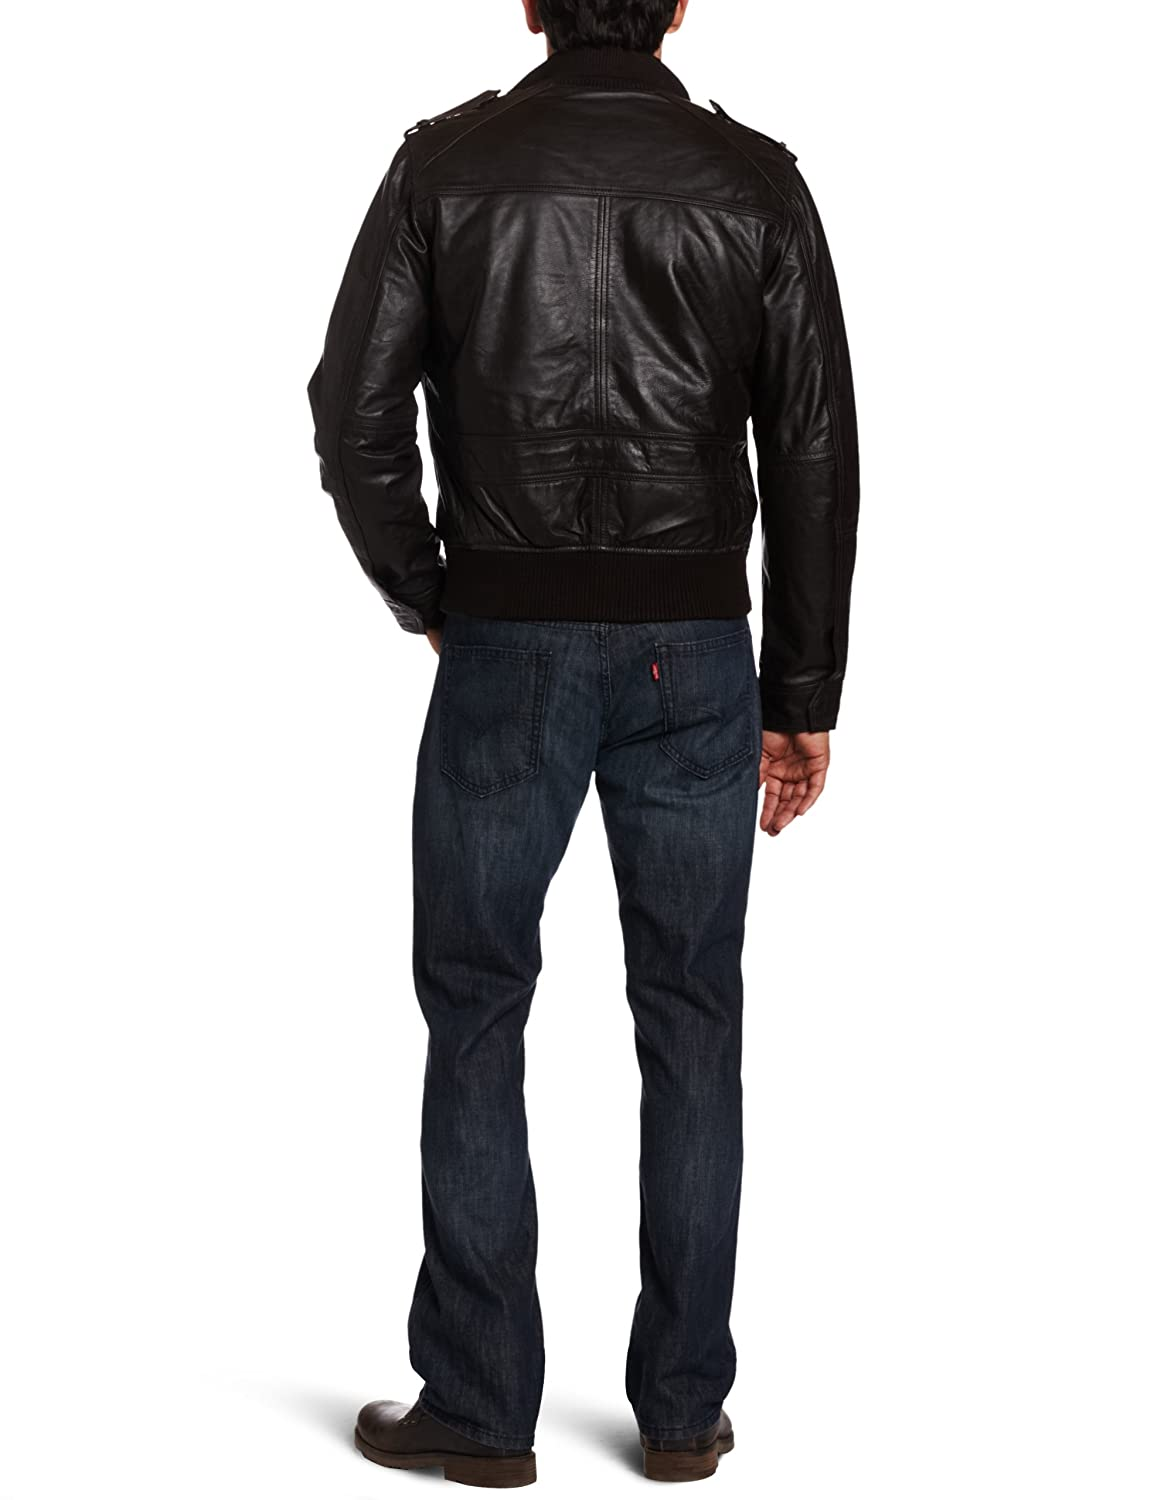 096bf6f8f Dockers Men's Limited Offer Military Leather Bomber Jacket, Dark ...